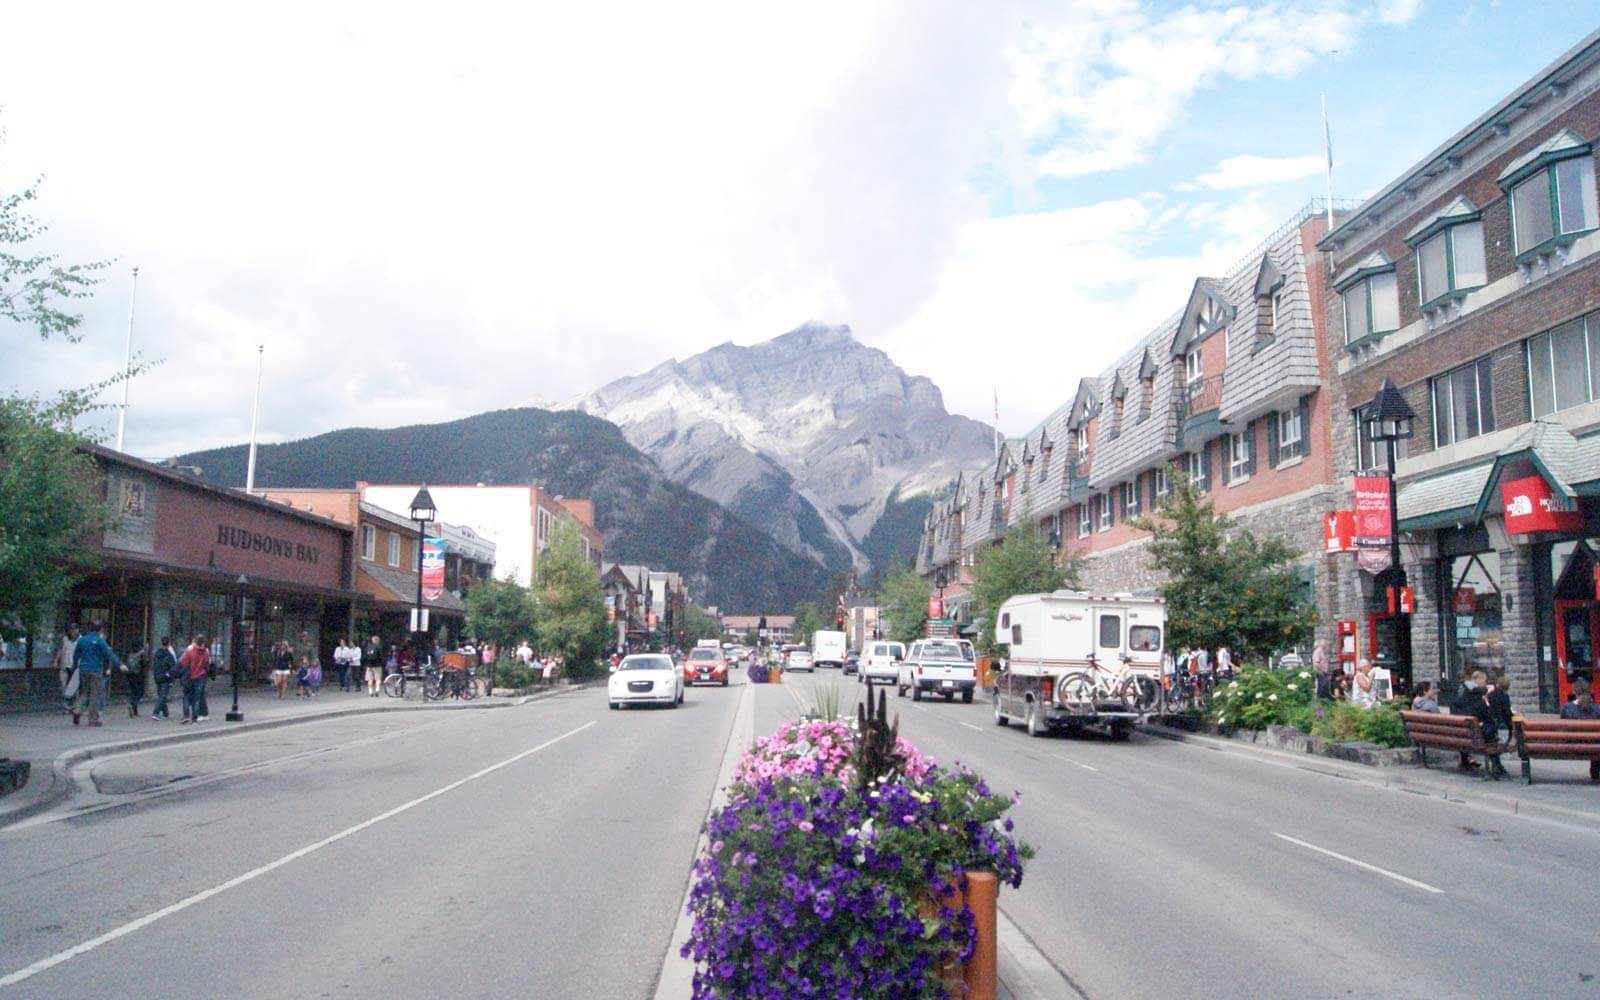 Banff Avenue in Kanada